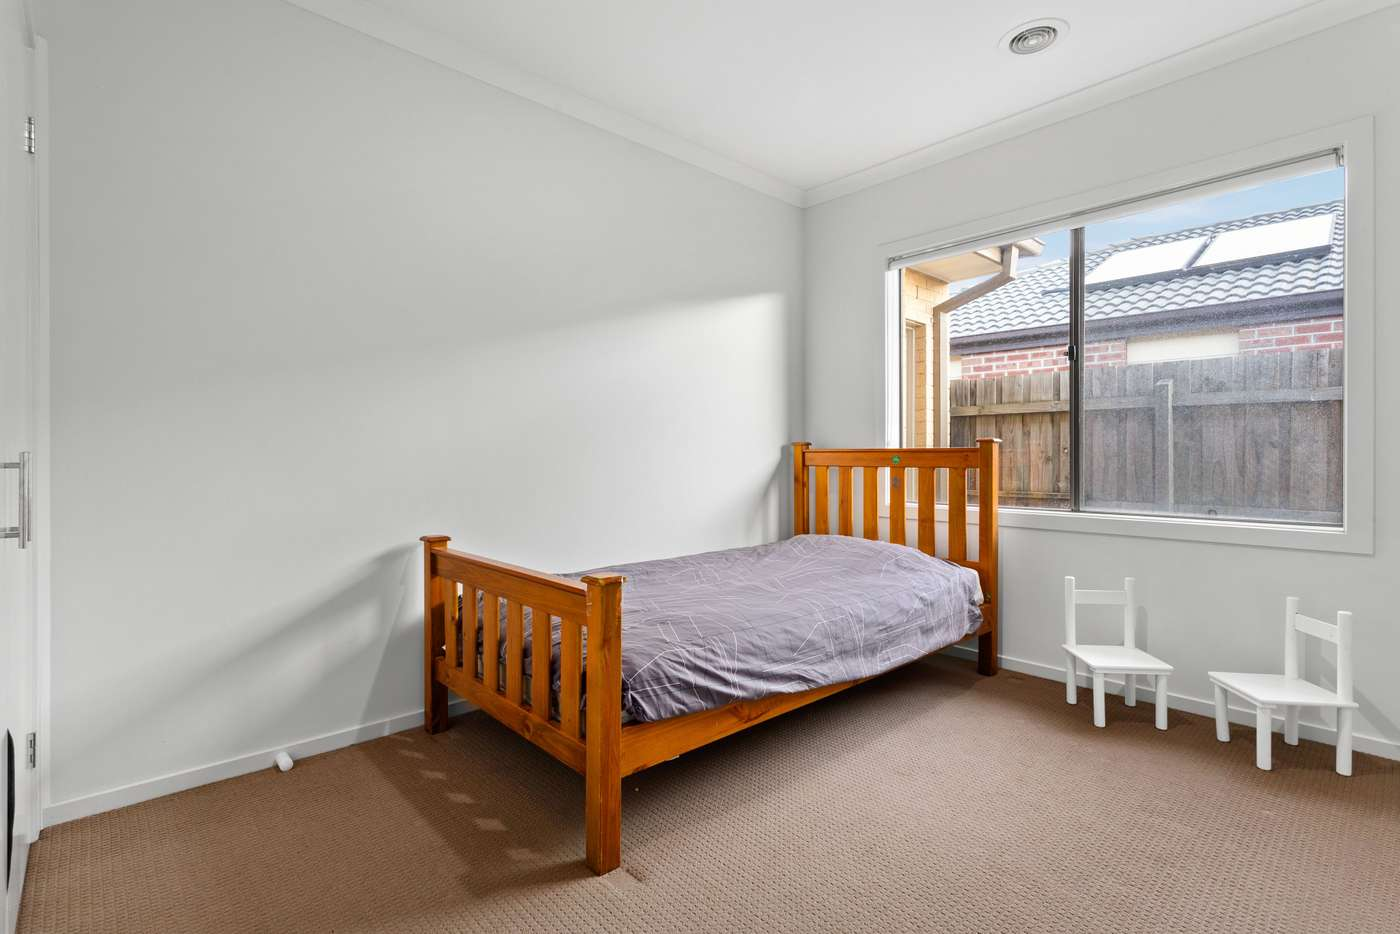 Sixth view of Homely house listing, 3 Pipit Close, Pakenham VIC 3810